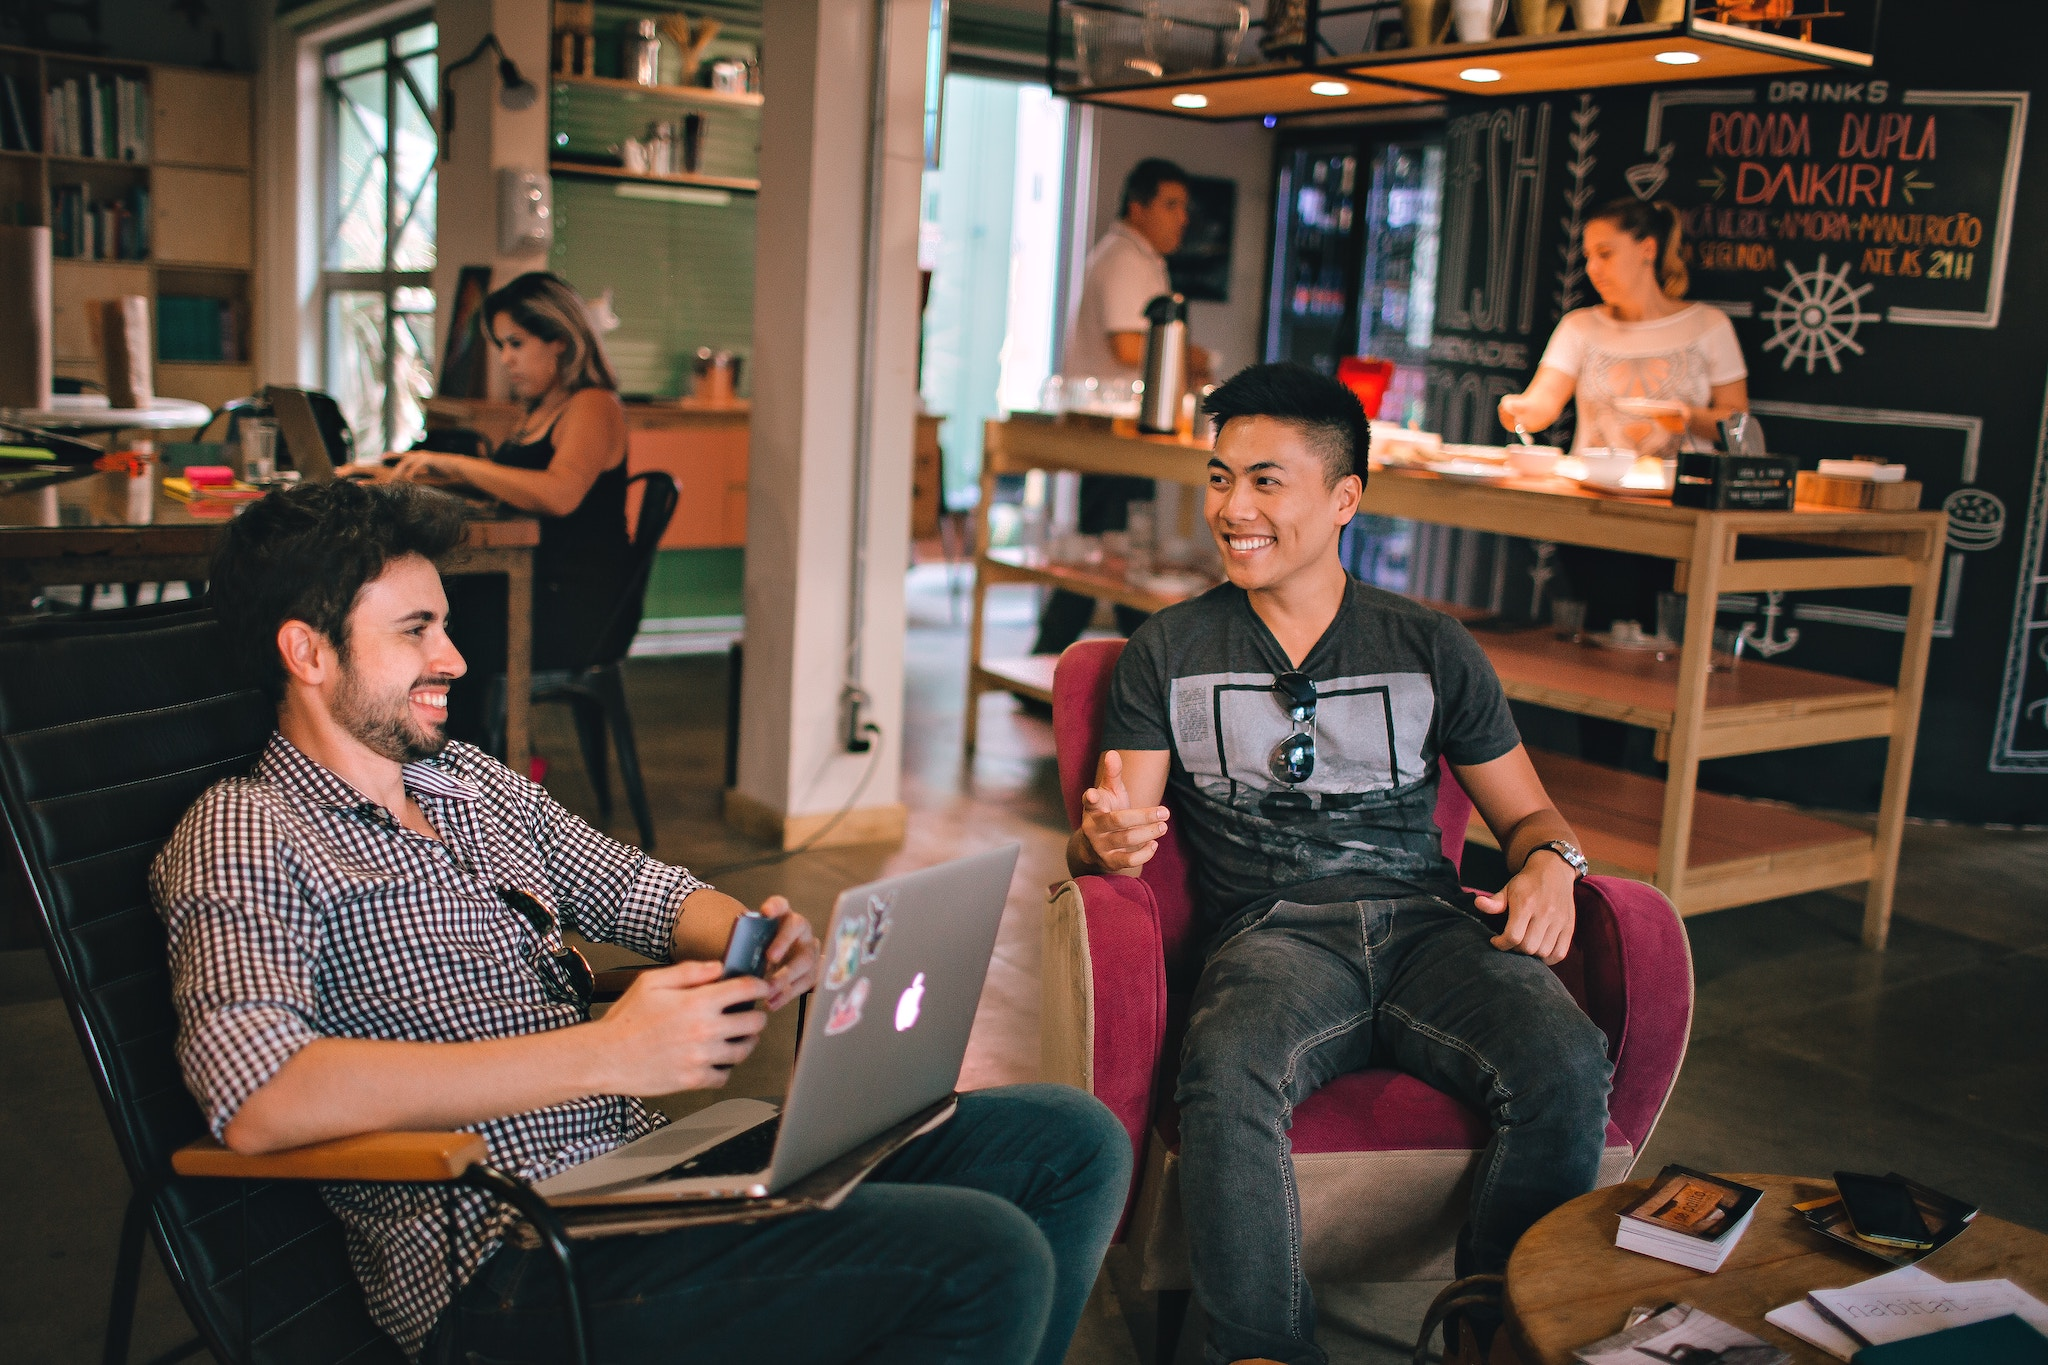 How to Promote Your Company Culture Among Employees